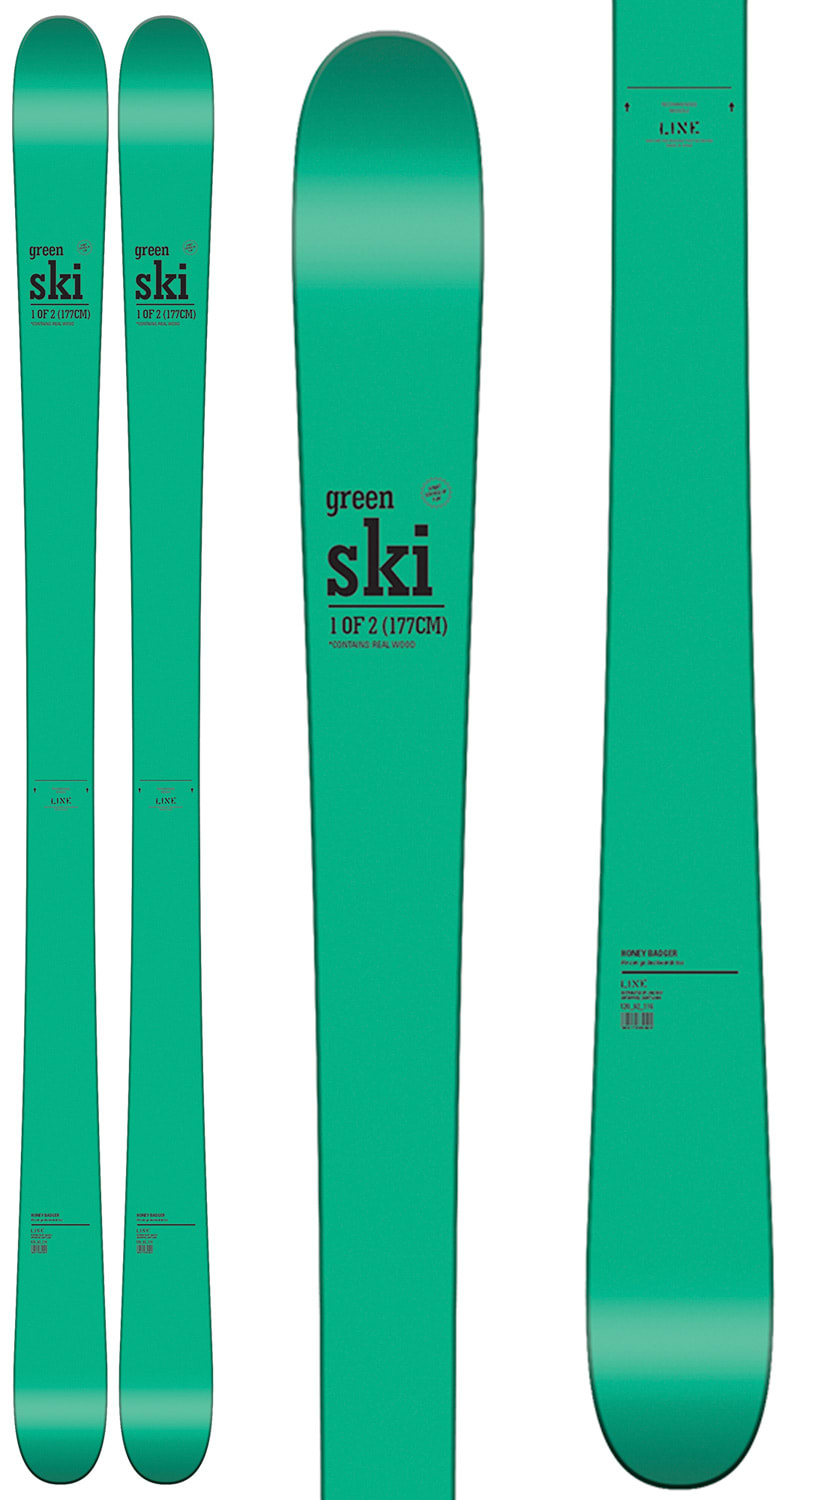 Level Nine Sports - Affordable Skis, Snowboards and Gear